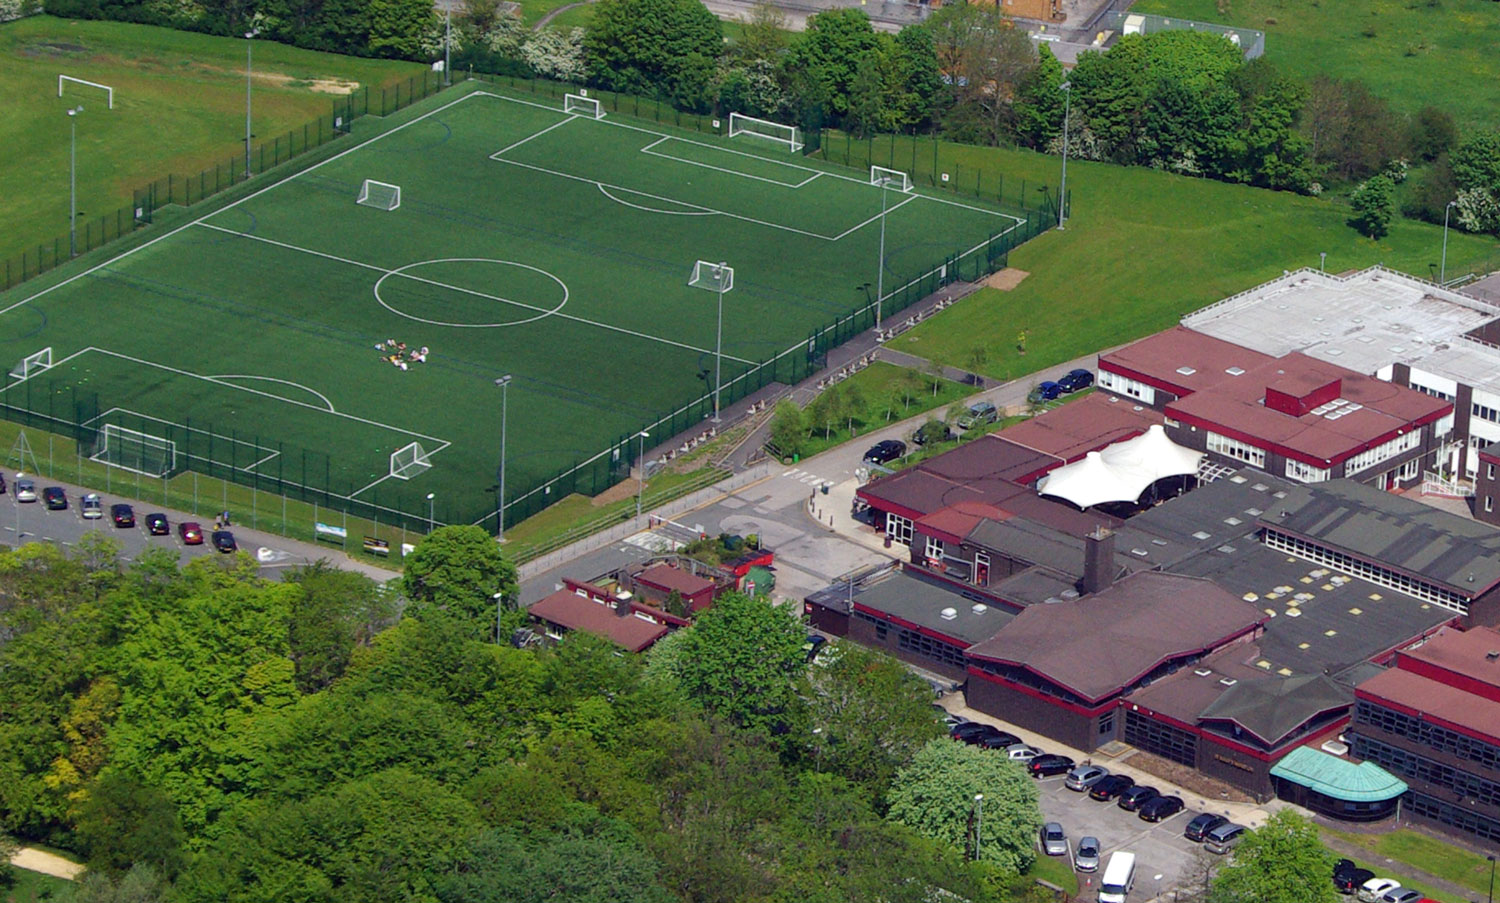 Aerial photo of St. Mary's school site showing Artificial Turf Pitch